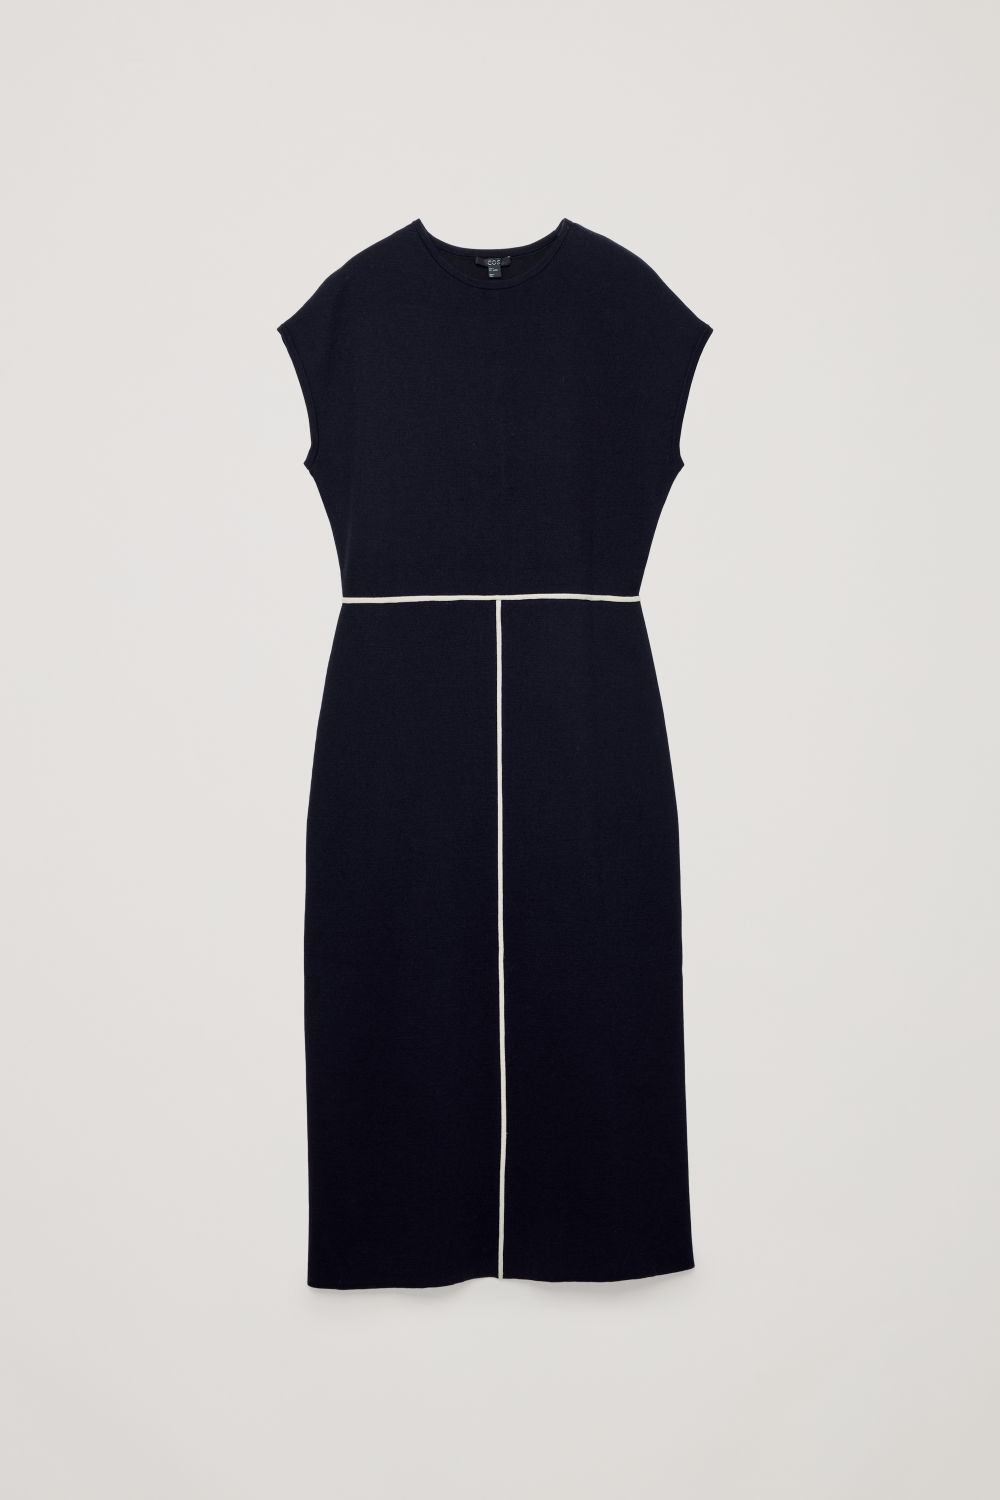 CONTRAST-TRIM MERINO-KNIT DRESS